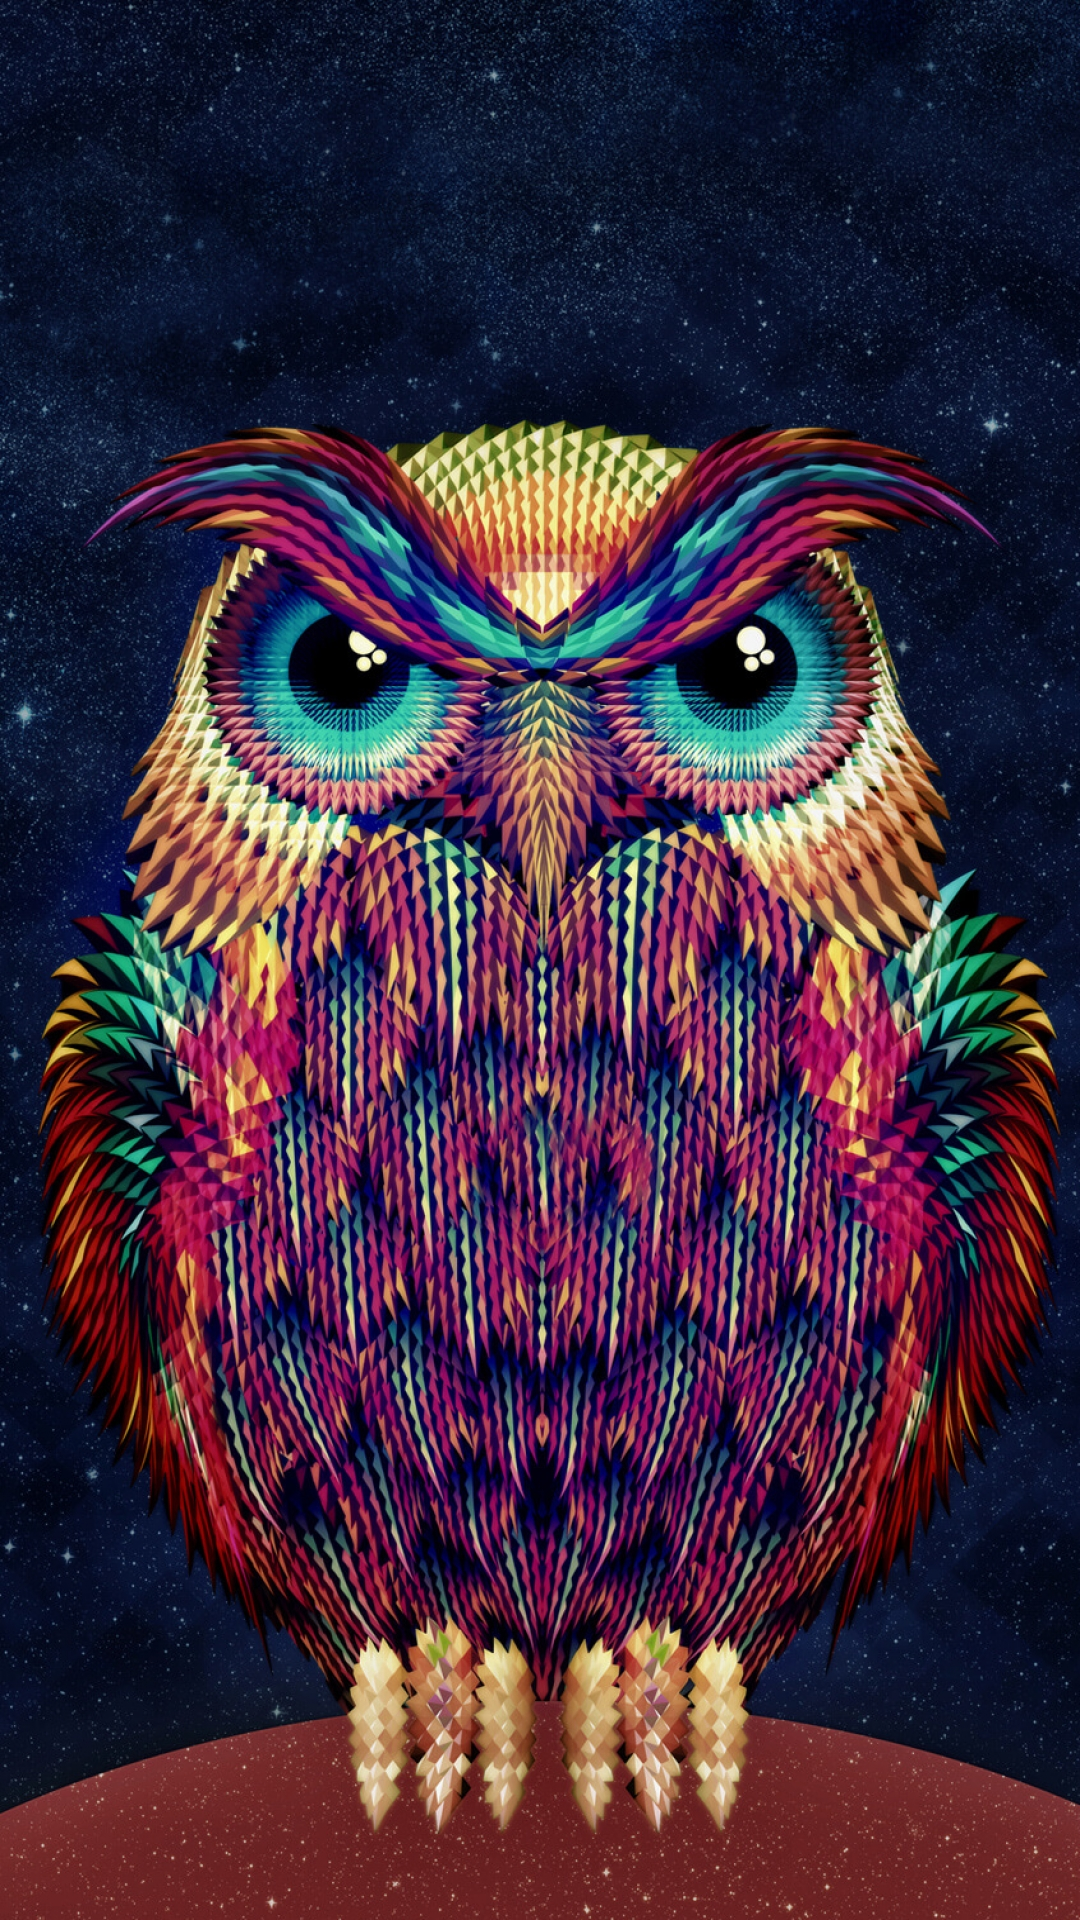 Owl Wallpaper For Iphone 11 Pro Max X 8 7 6 Free Download On 3wallpapers